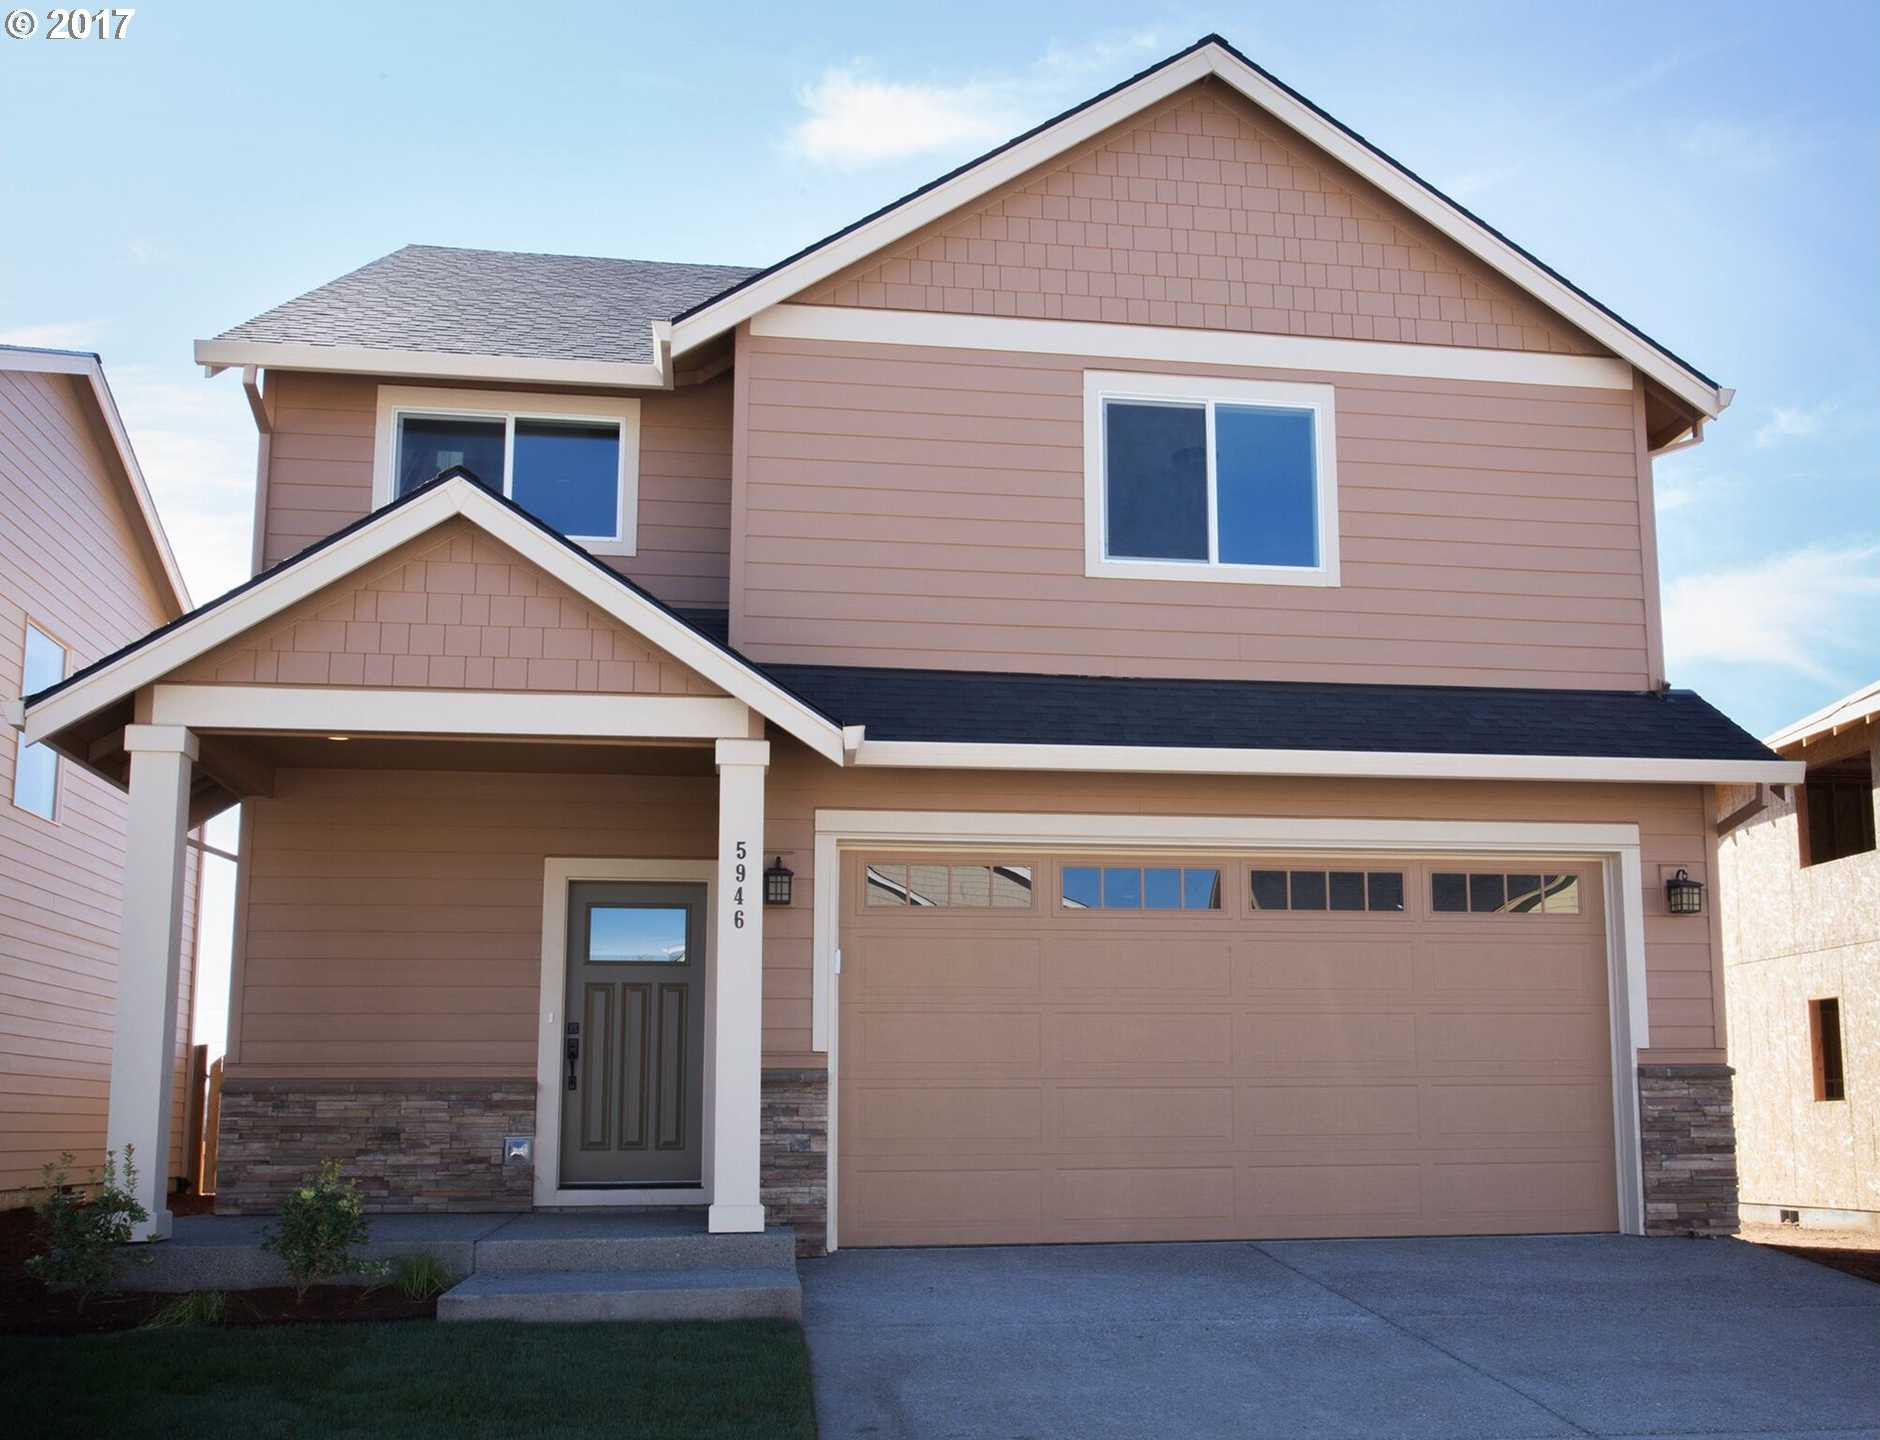 $460,000 - 5Br/3Ba -  for Sale in Samson Acres, Gresham